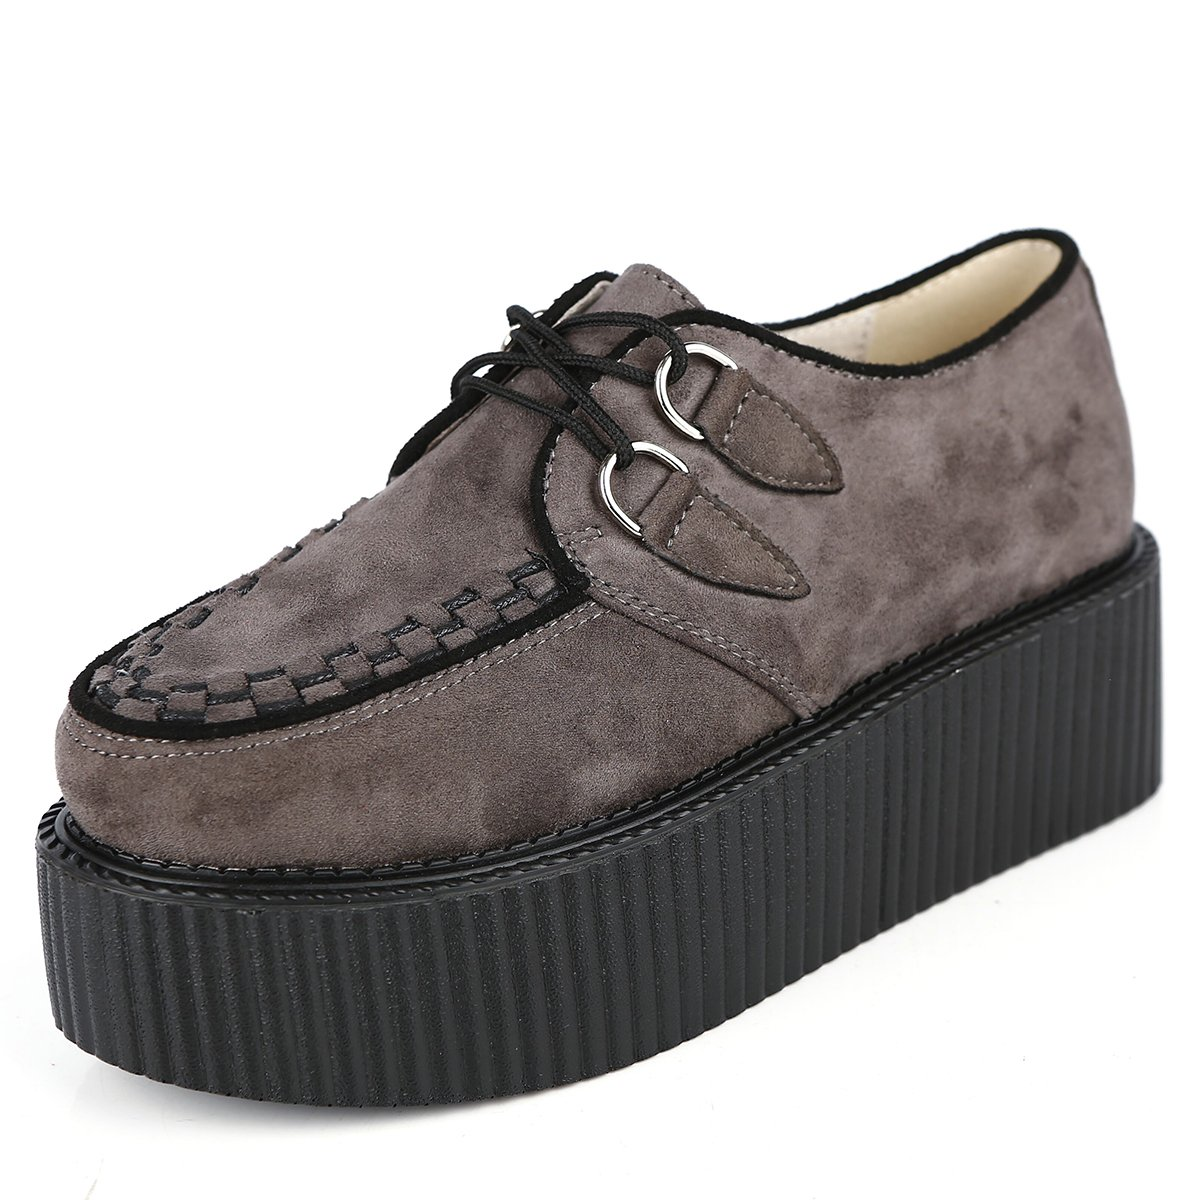 RoseG Femmes Lacets Gris Plate Forme Gothique Punk Creepers 19999 Chaussures Casual Chaussures Gris 7ca2706 - epictionpvp.space